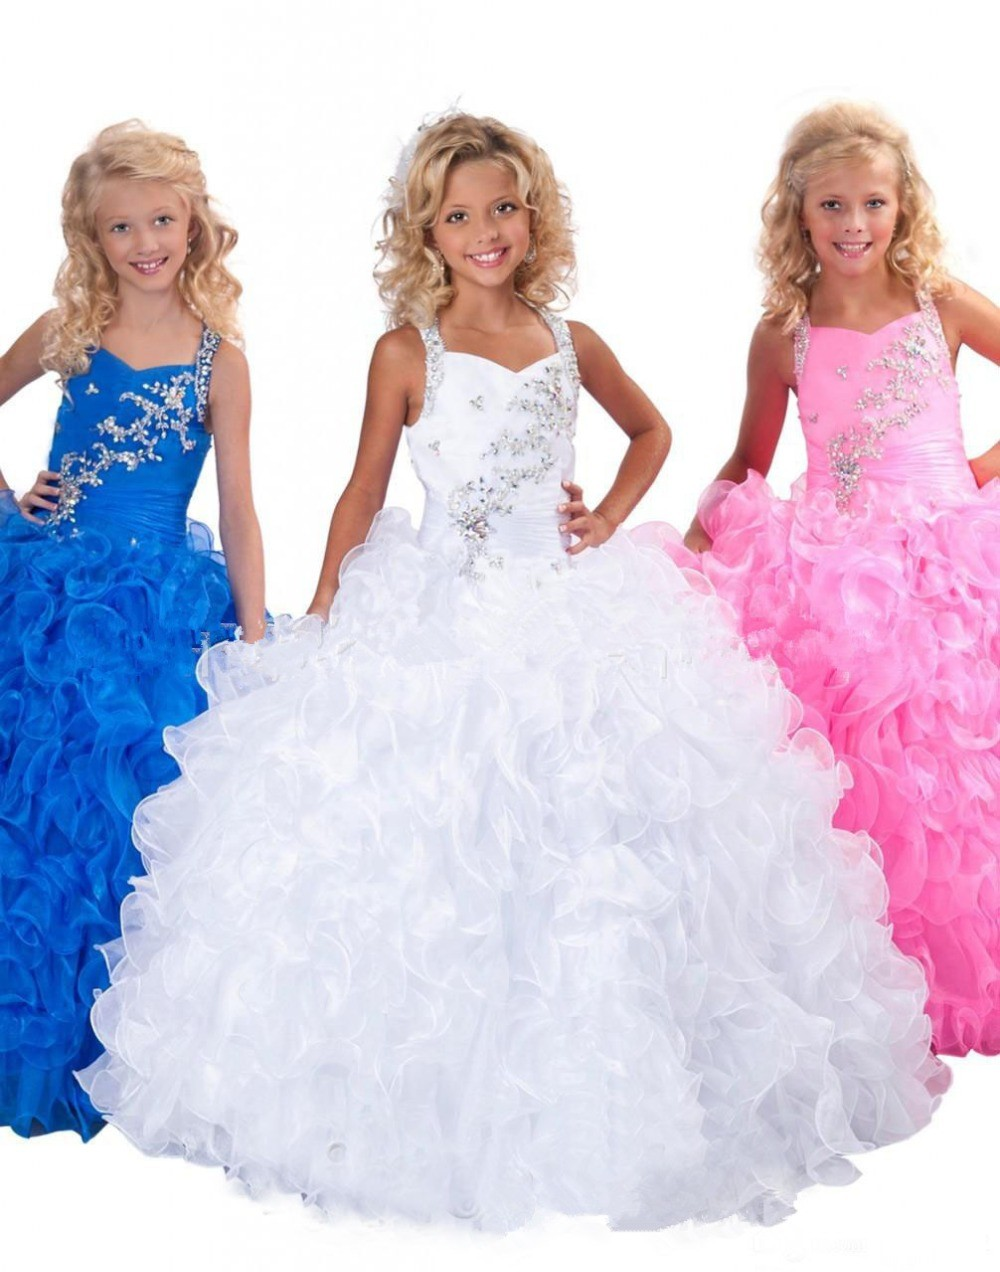 Princess Ball Gown Blue White Pink Flower Girl Dresses Cute Ball Gown Halter Summer Girls Pageant Dress for Weddings Party Gown цены онлайн